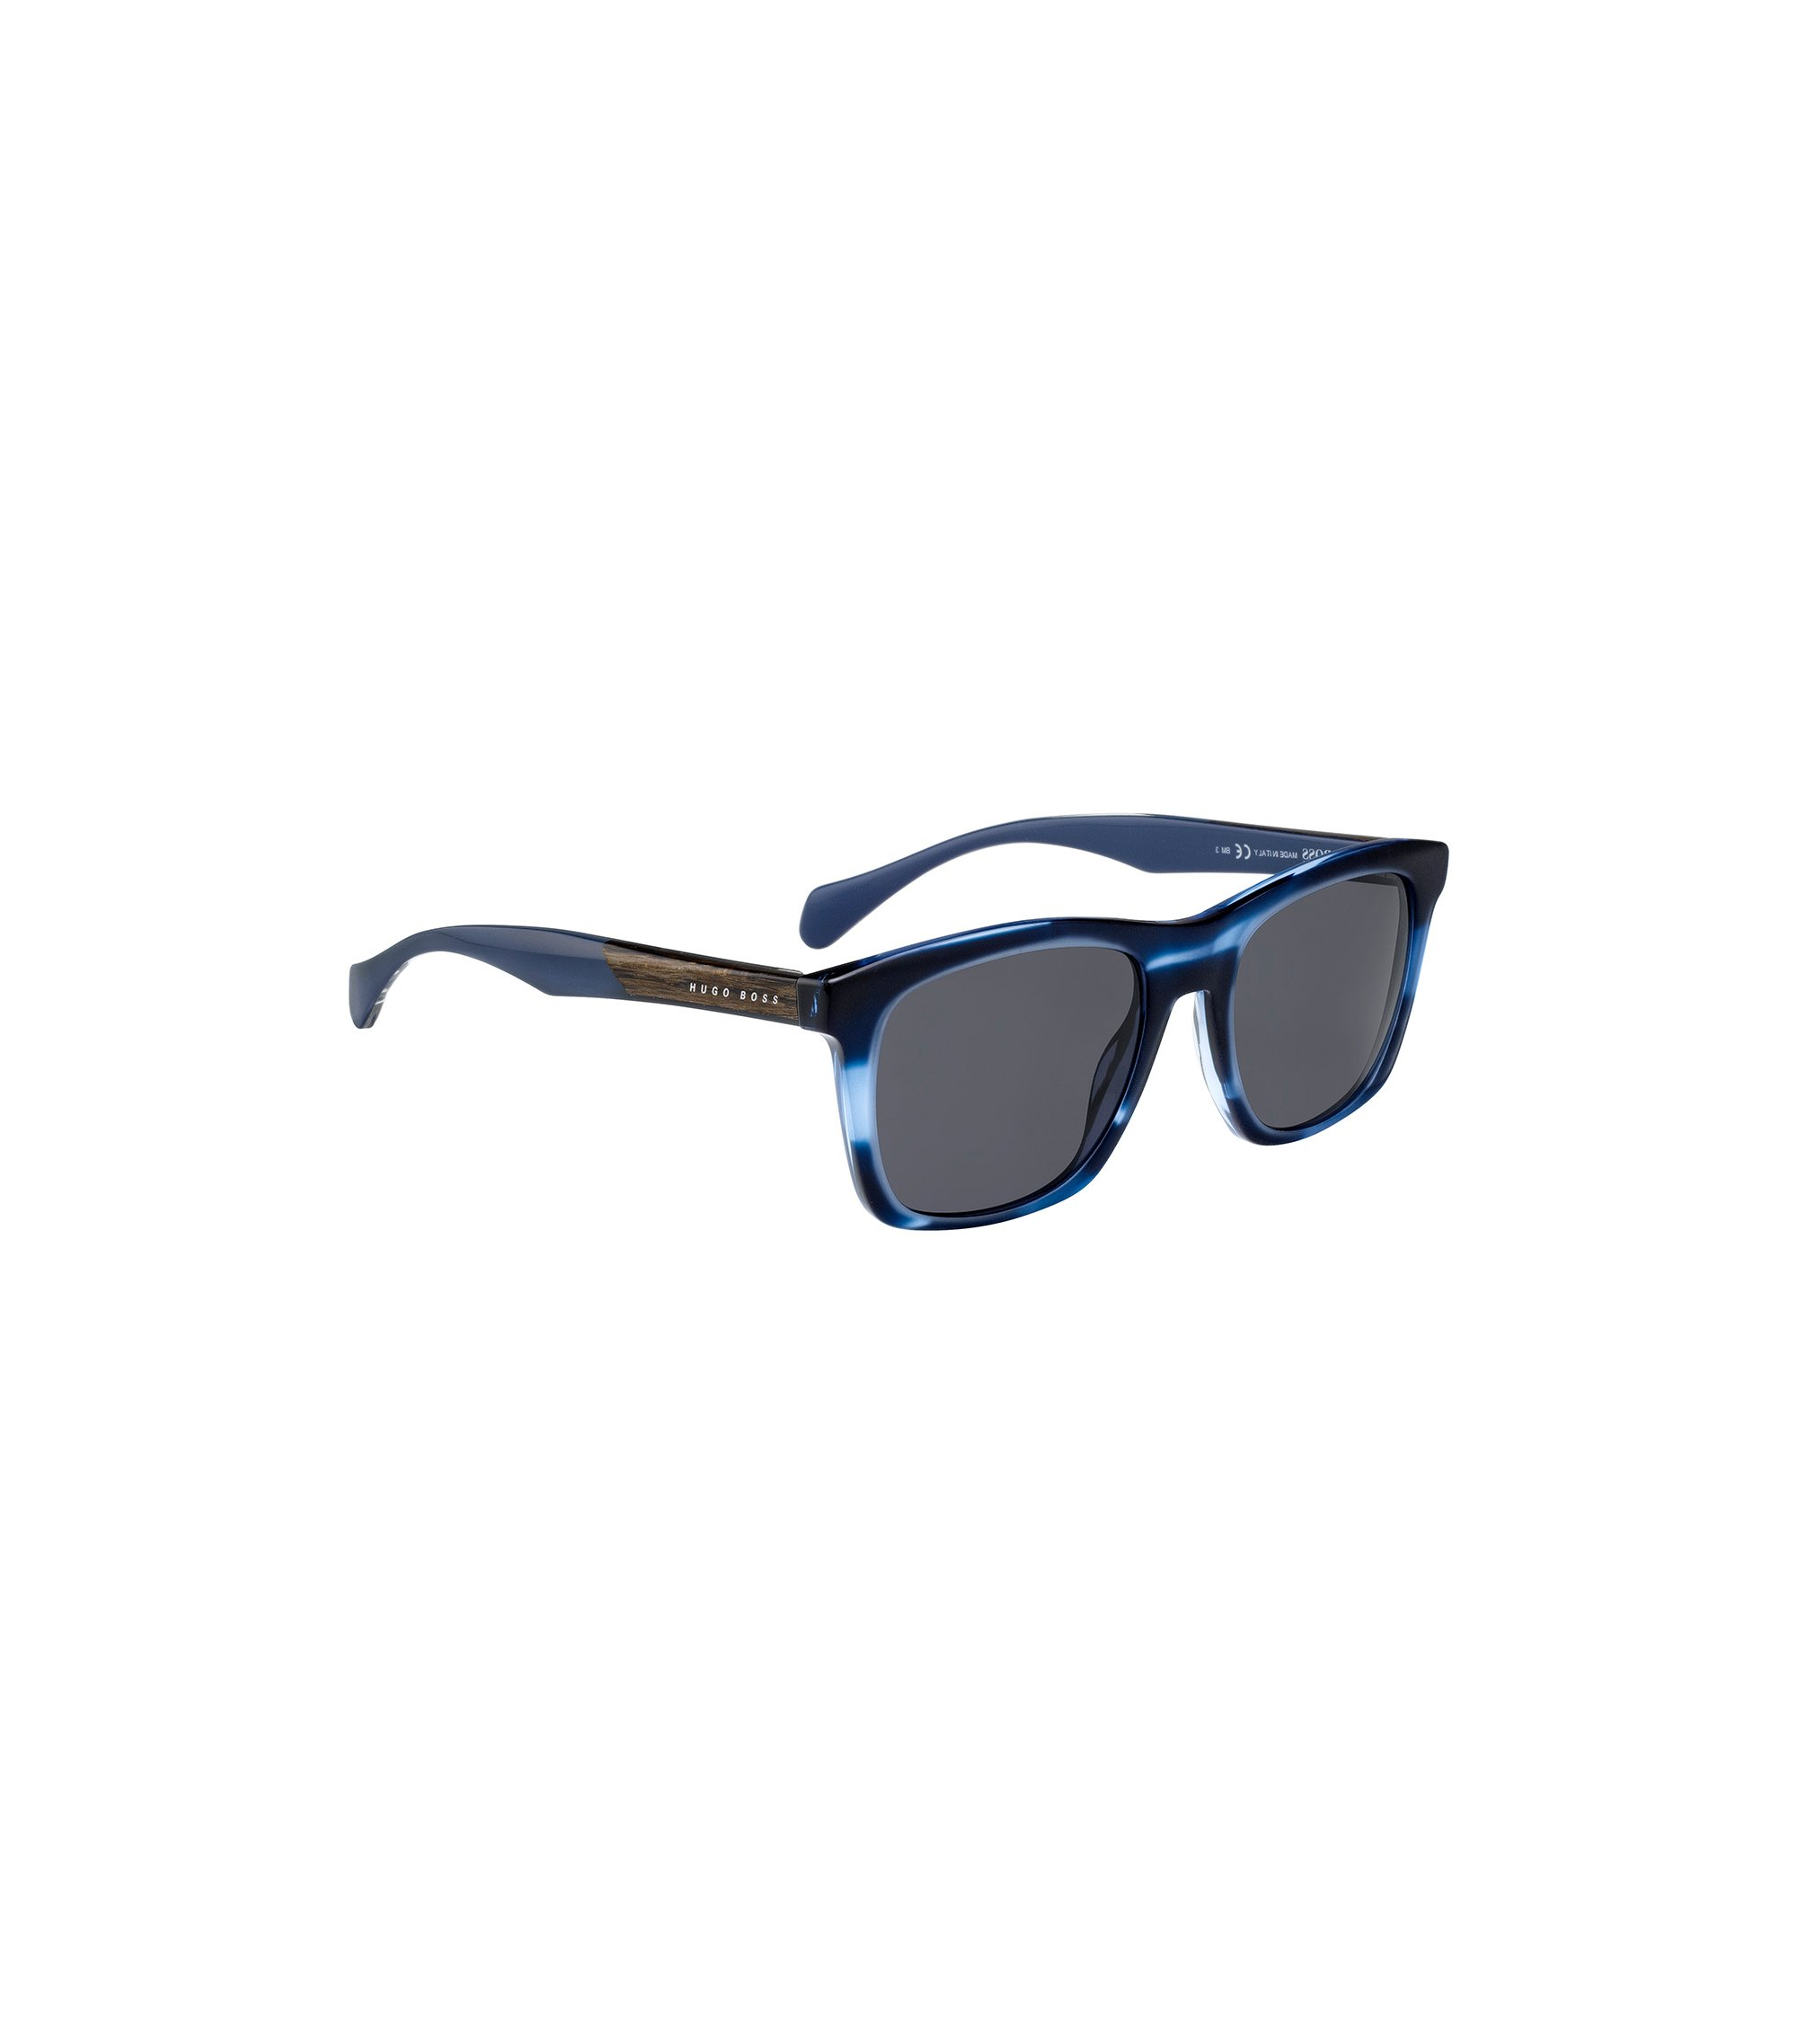 Acetate Rectangular Sunglasses | BOSS 0911/S, Assorted-Pre-Pack